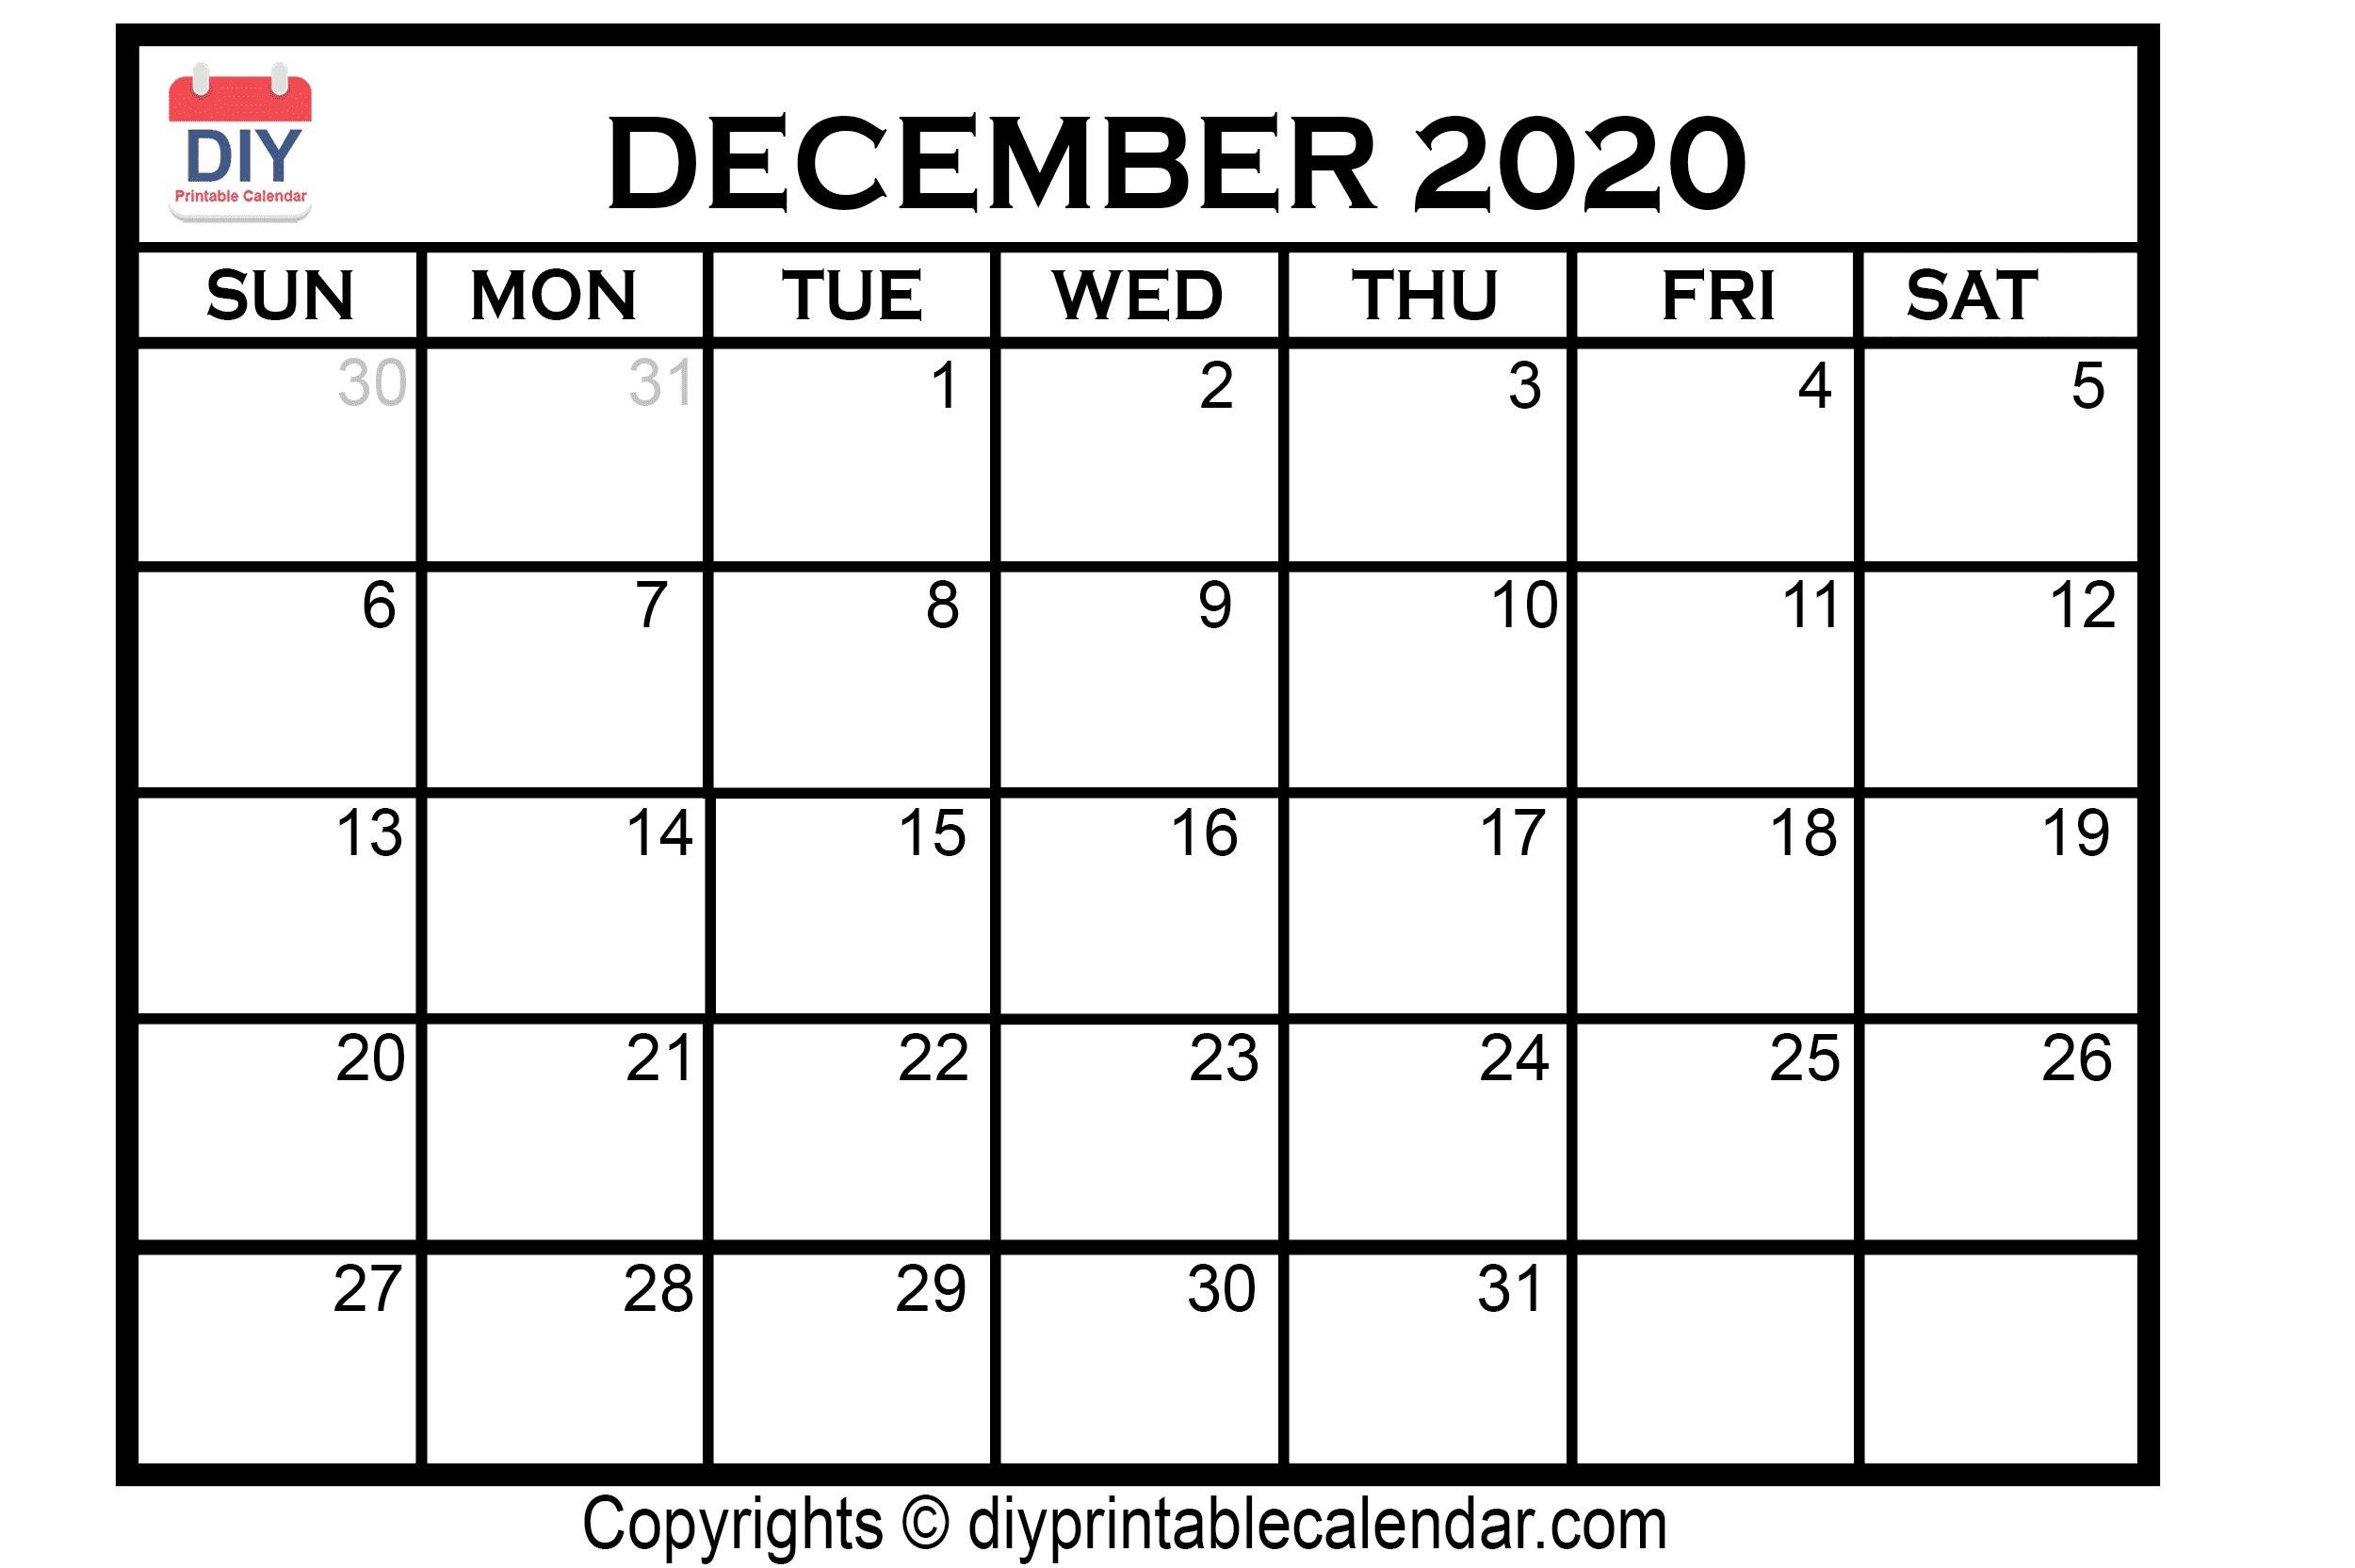 Dashing December 2020 Calendar List Format In 2020 inside 2021 Rut Predictor